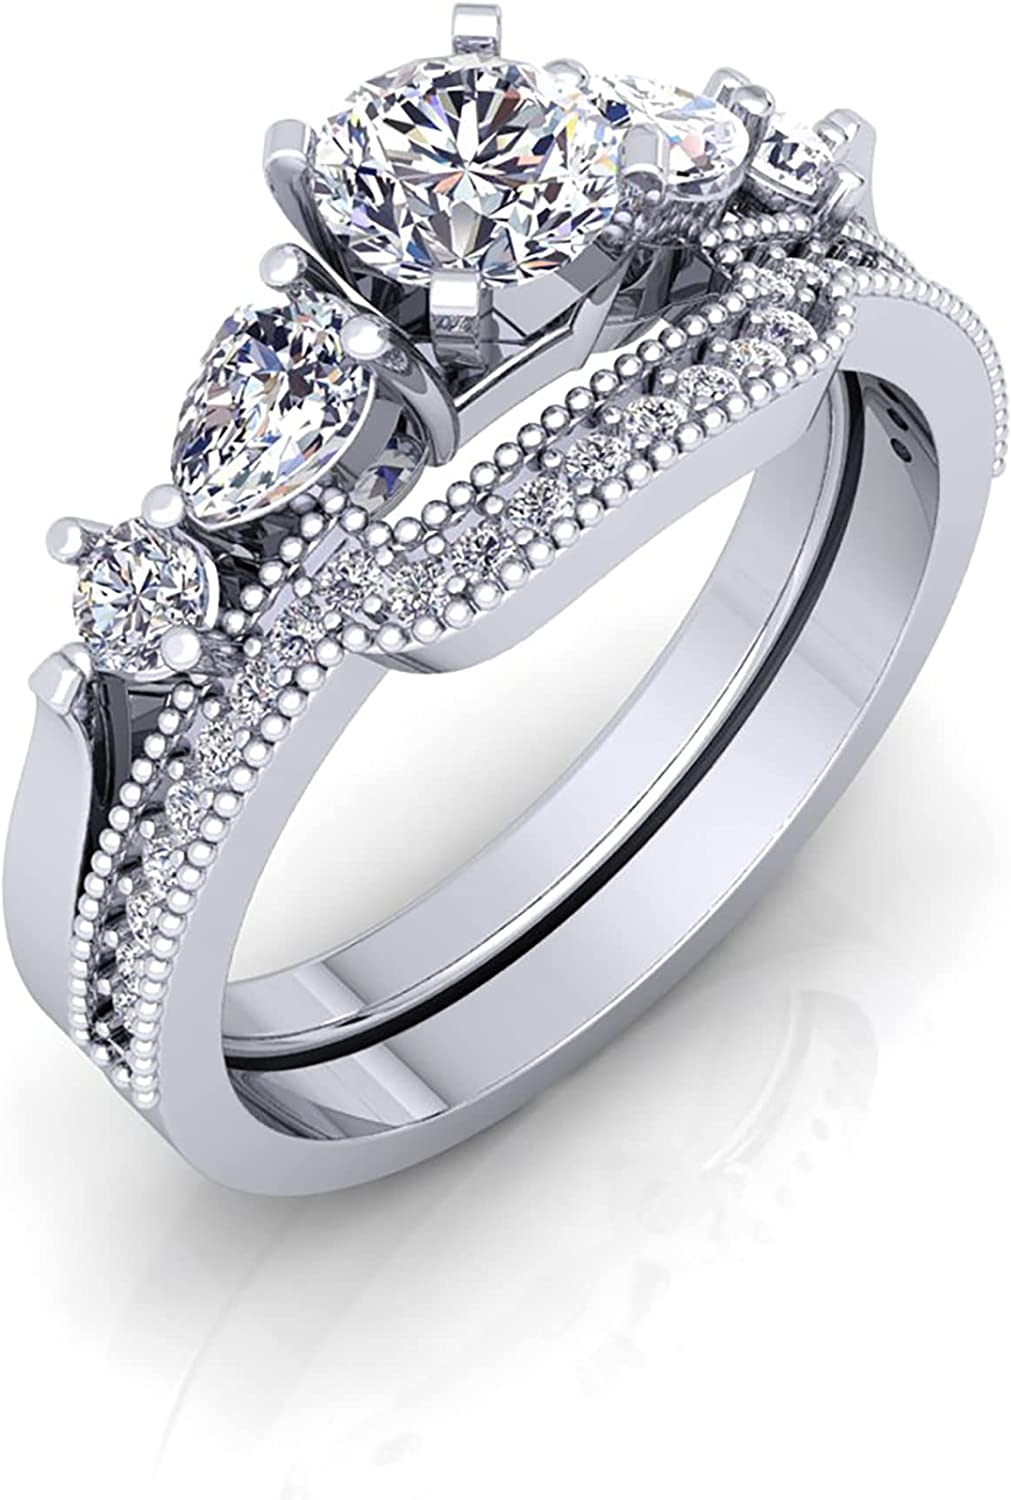 Diamond Free shipping anywhere in the nation Bridal San Jose Mall Sets 1.10 CTW - White Cut Natural Di Round Pear